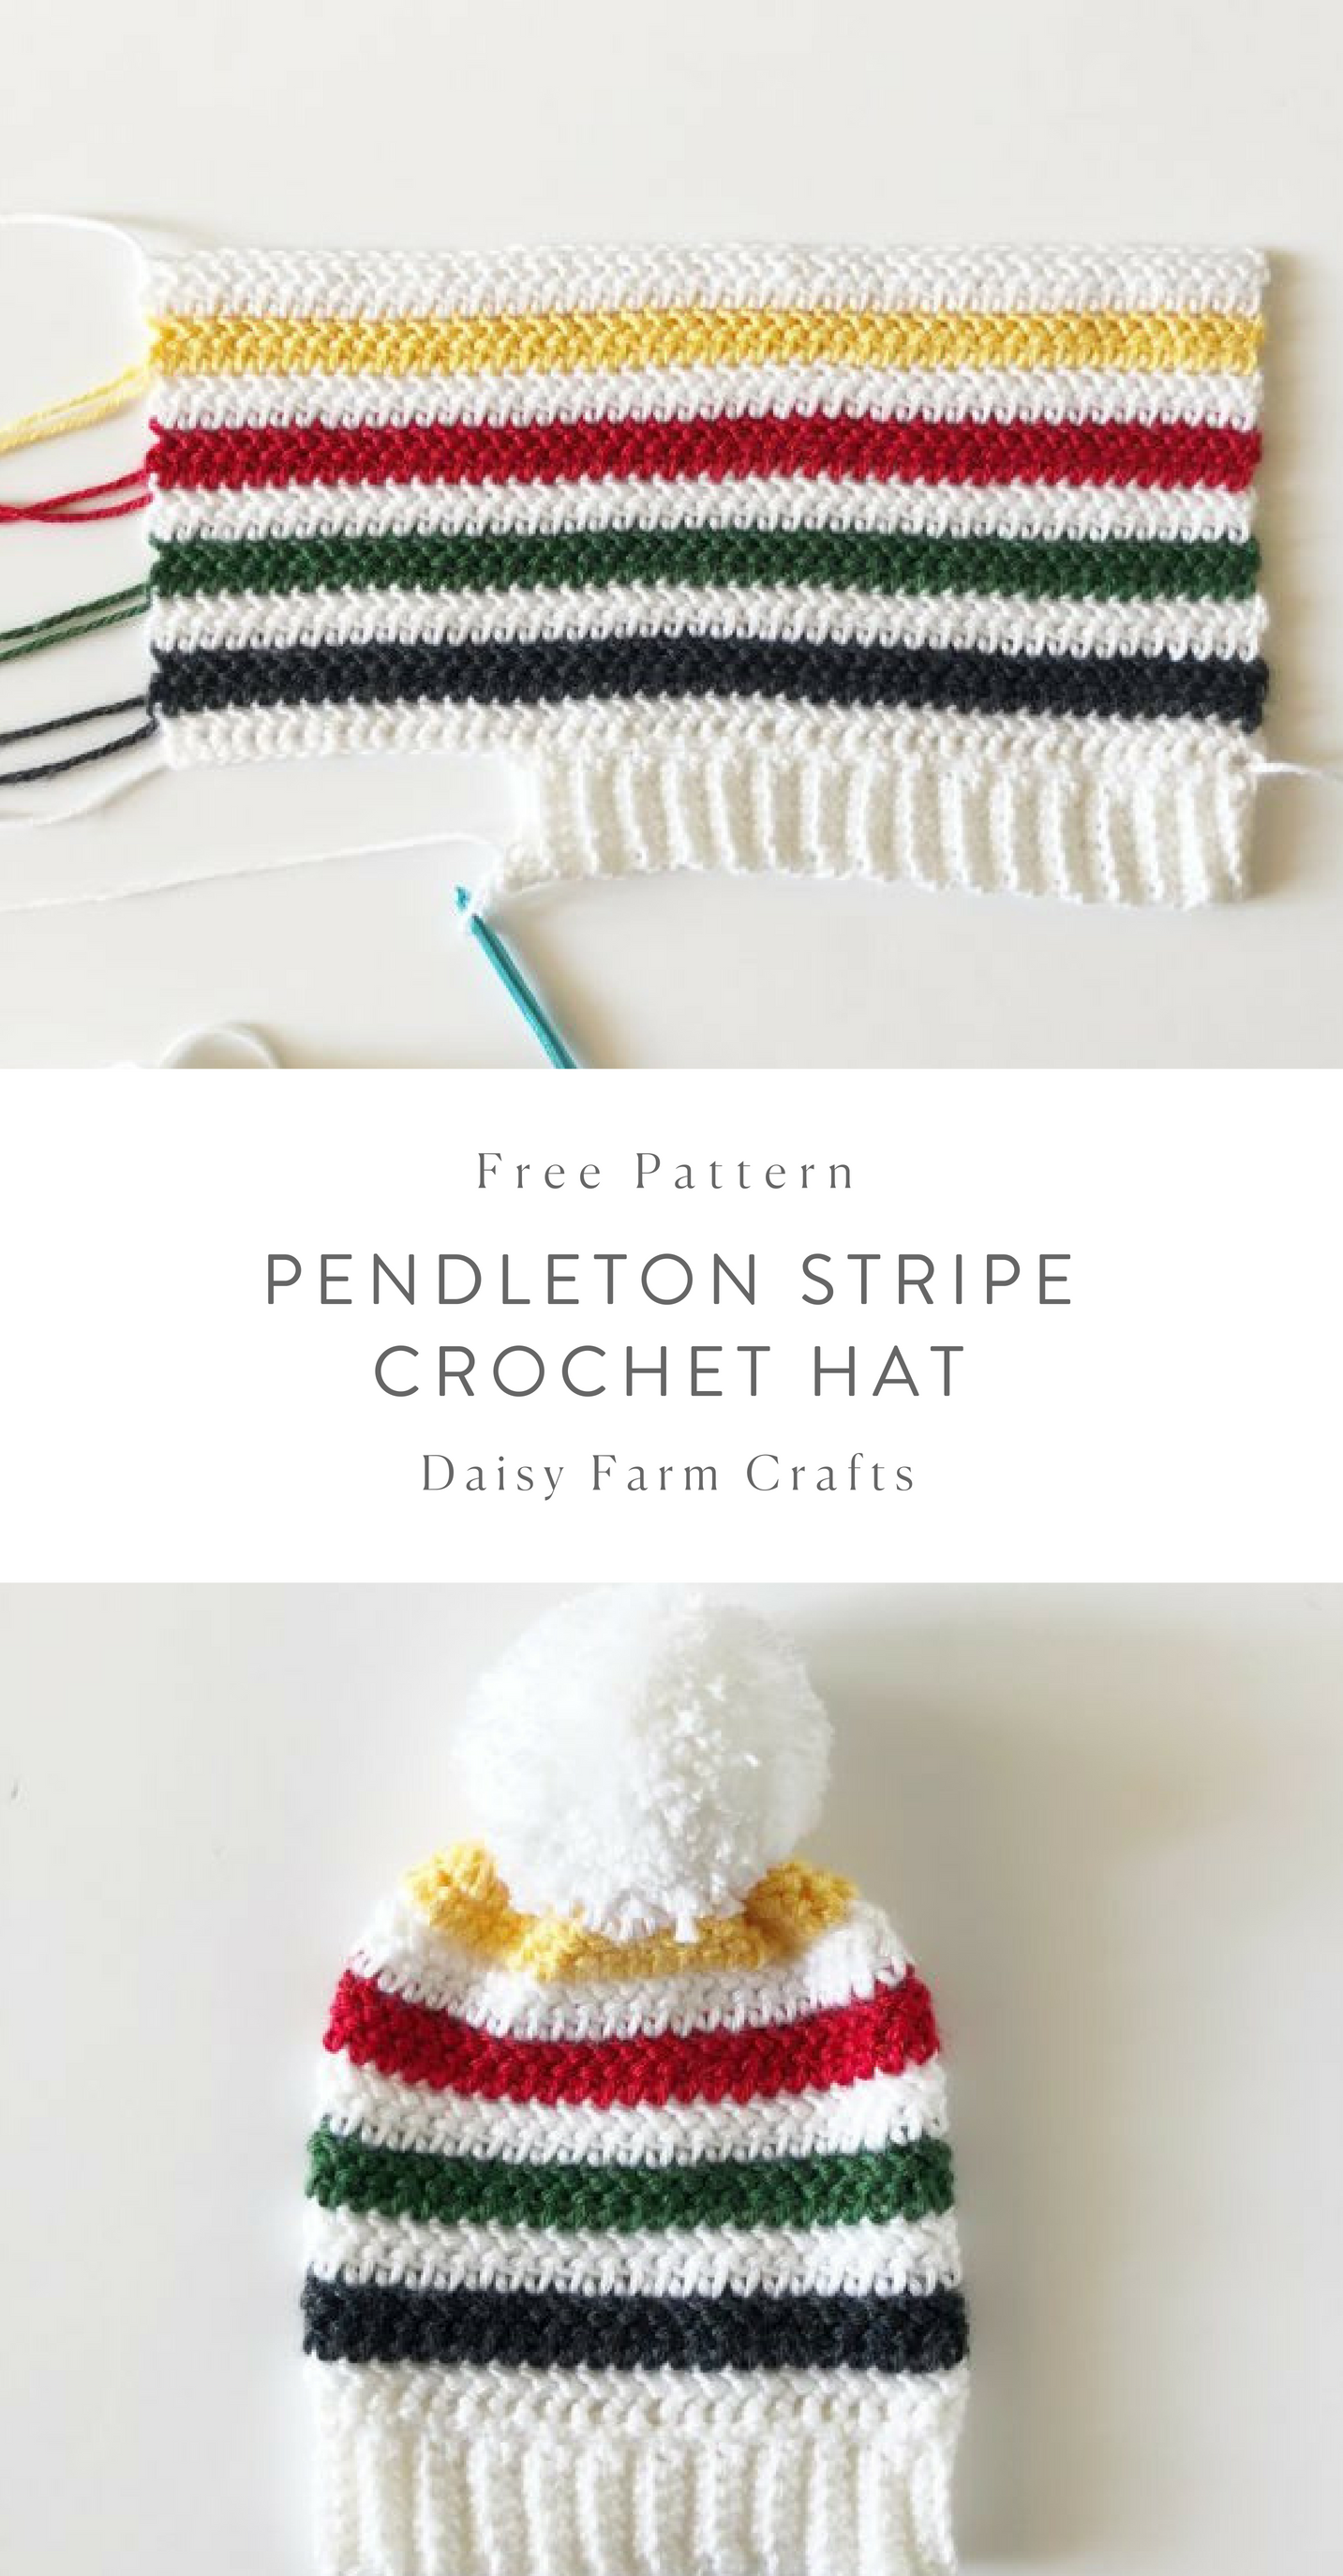 Free Pattern - Pendleton Stripe Crochet Hat | Crochet Hats ...